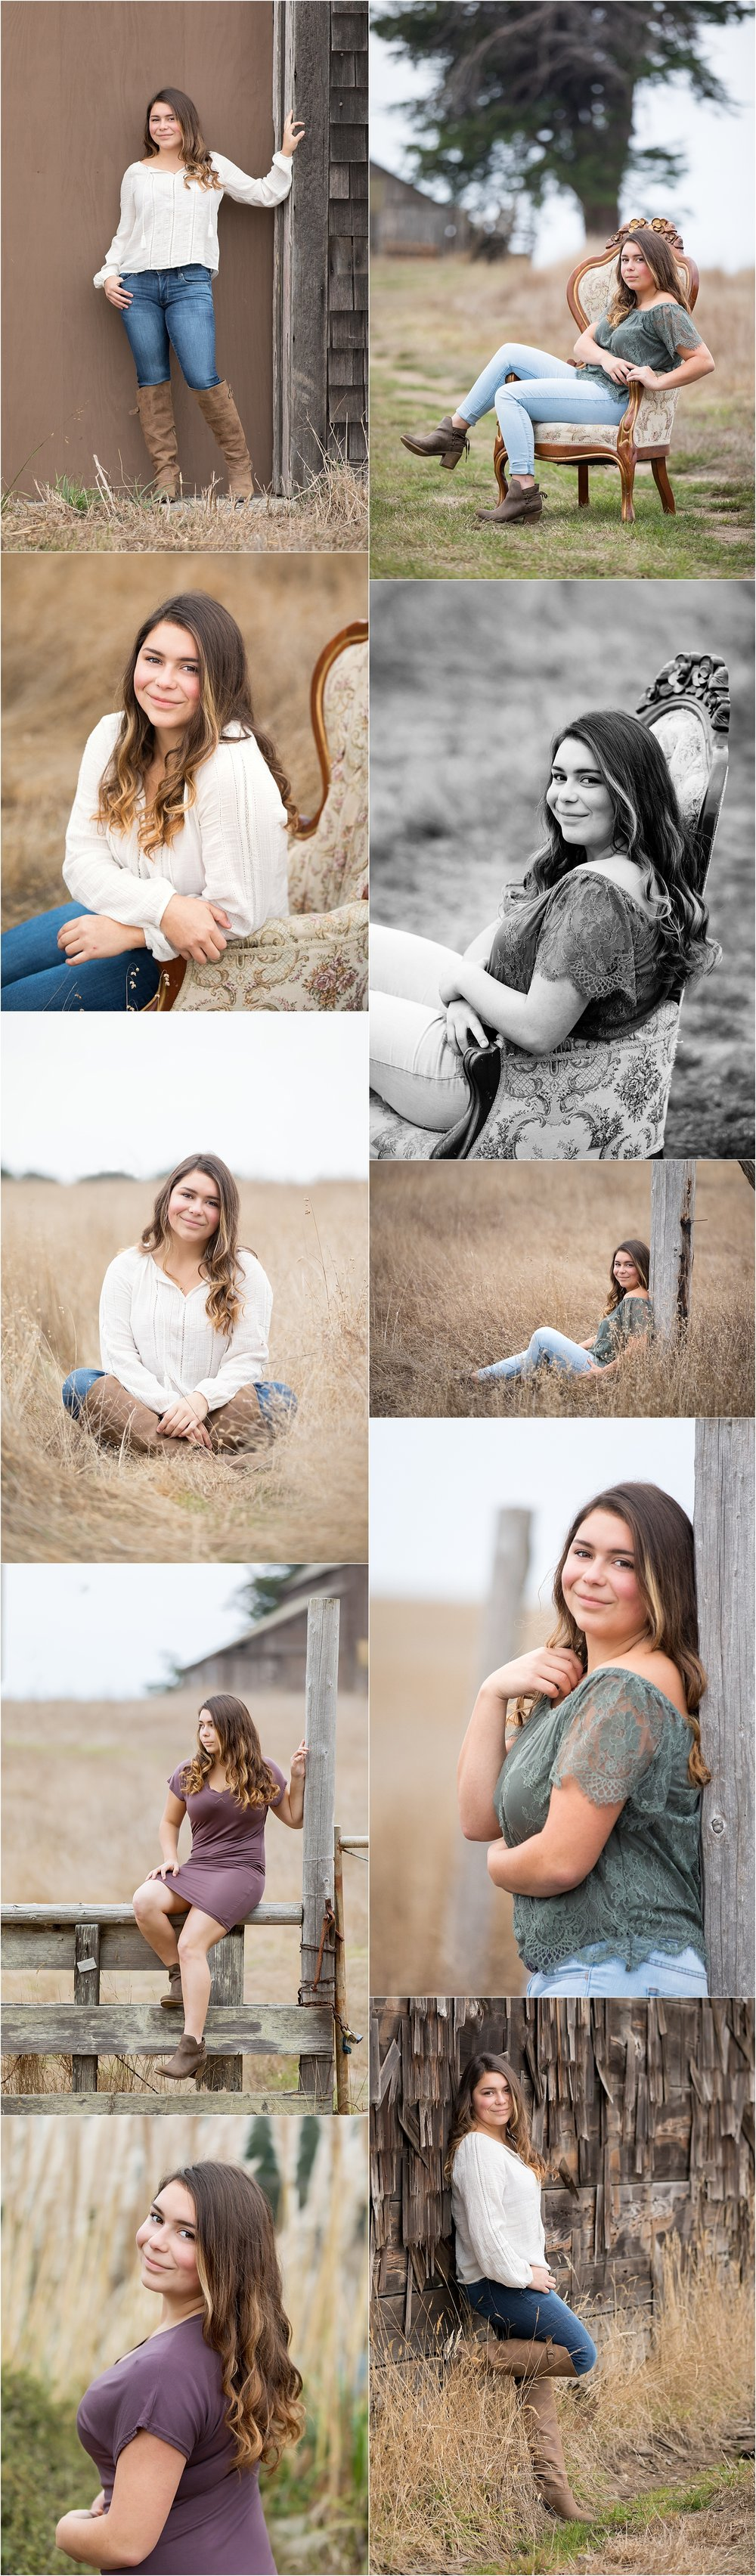 fort-bragg-high-senior-photography-kylee.jpg